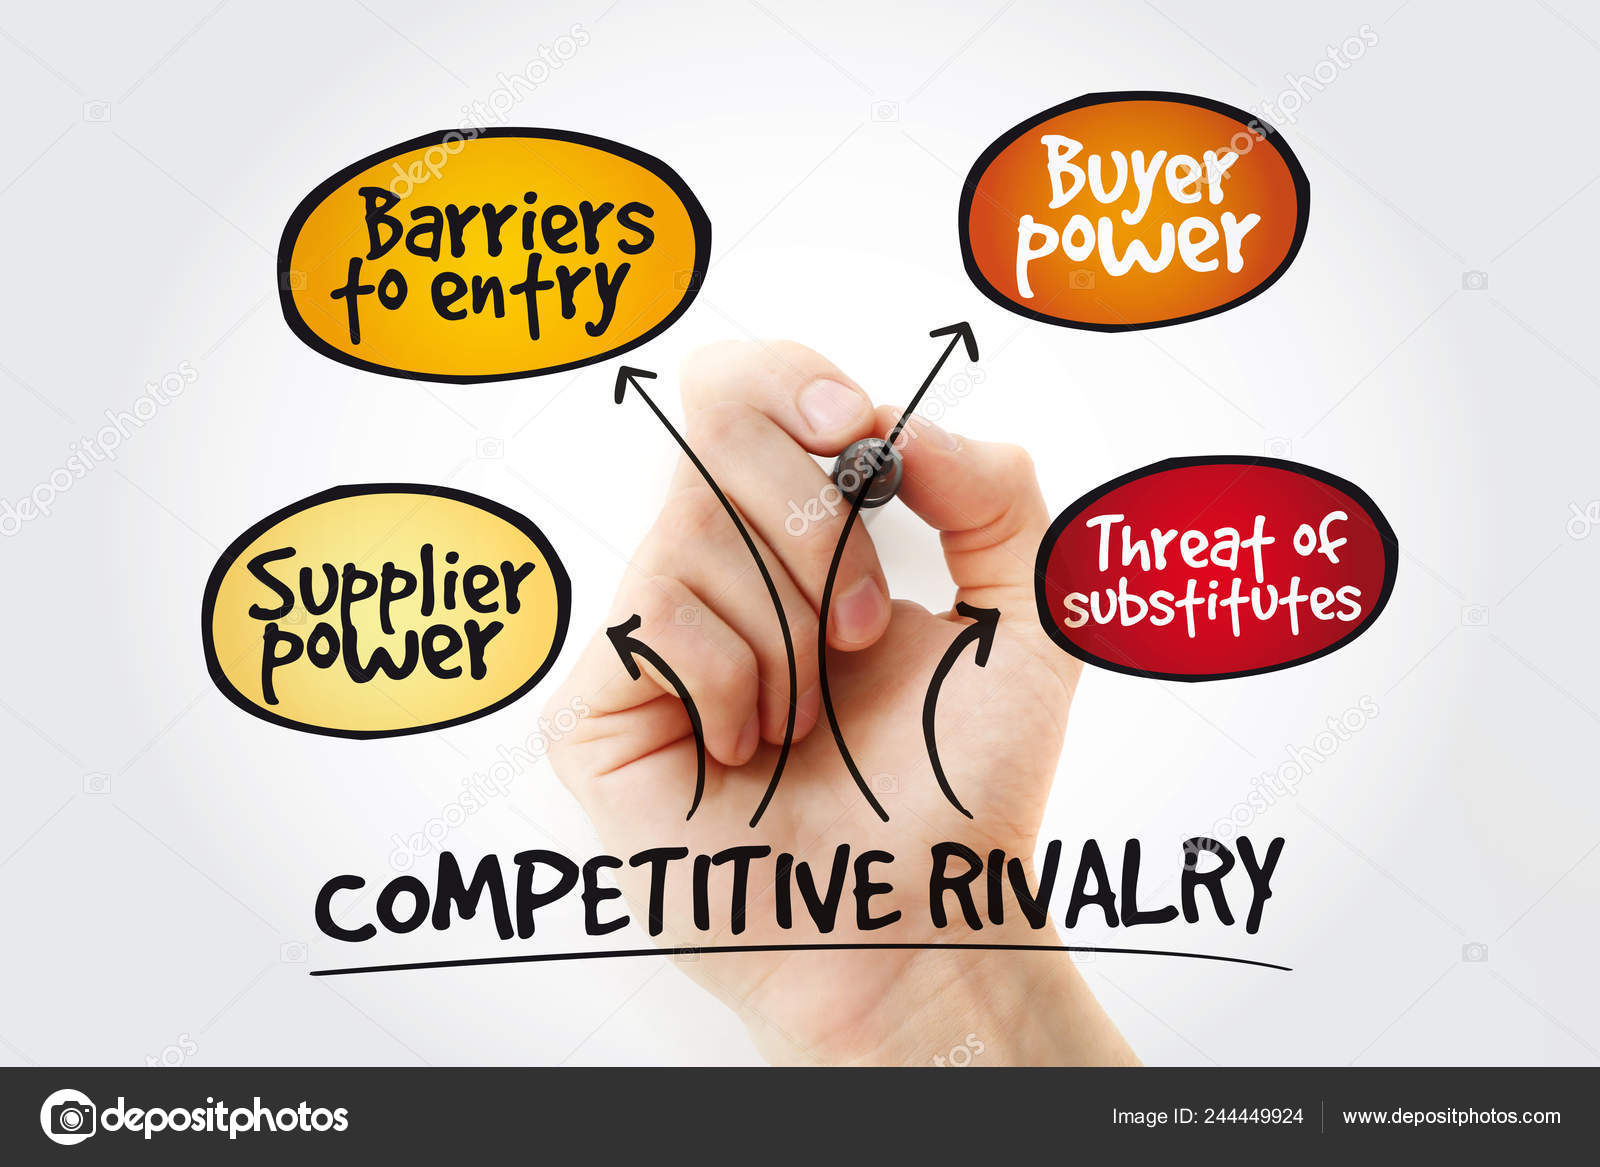 Competitive Rivalry Five Forces Mind Map Flowchart Marker Business